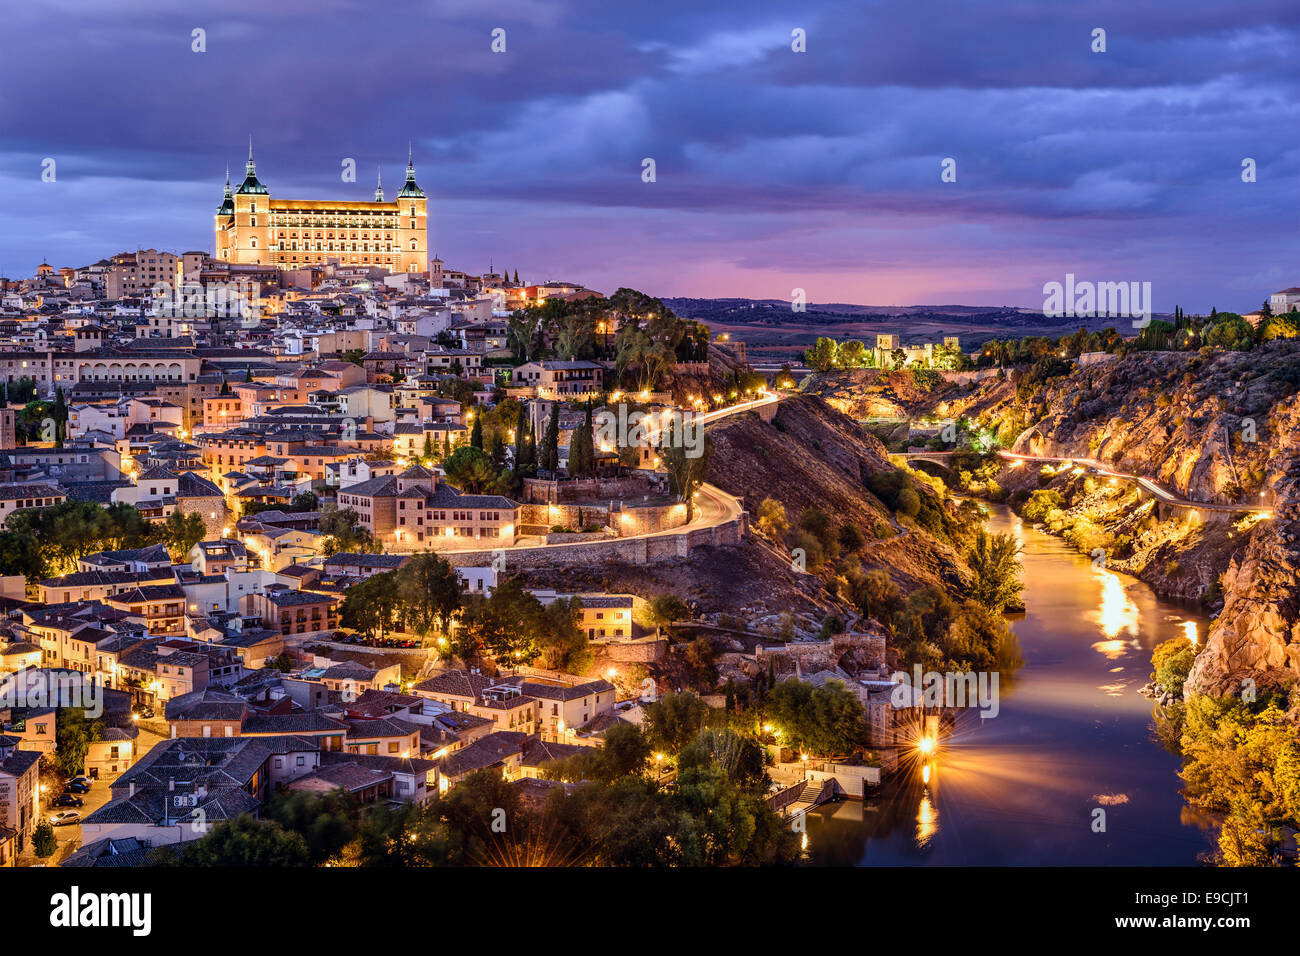 Toledo, Spain town skyline on the Tagus River. - Stock Image